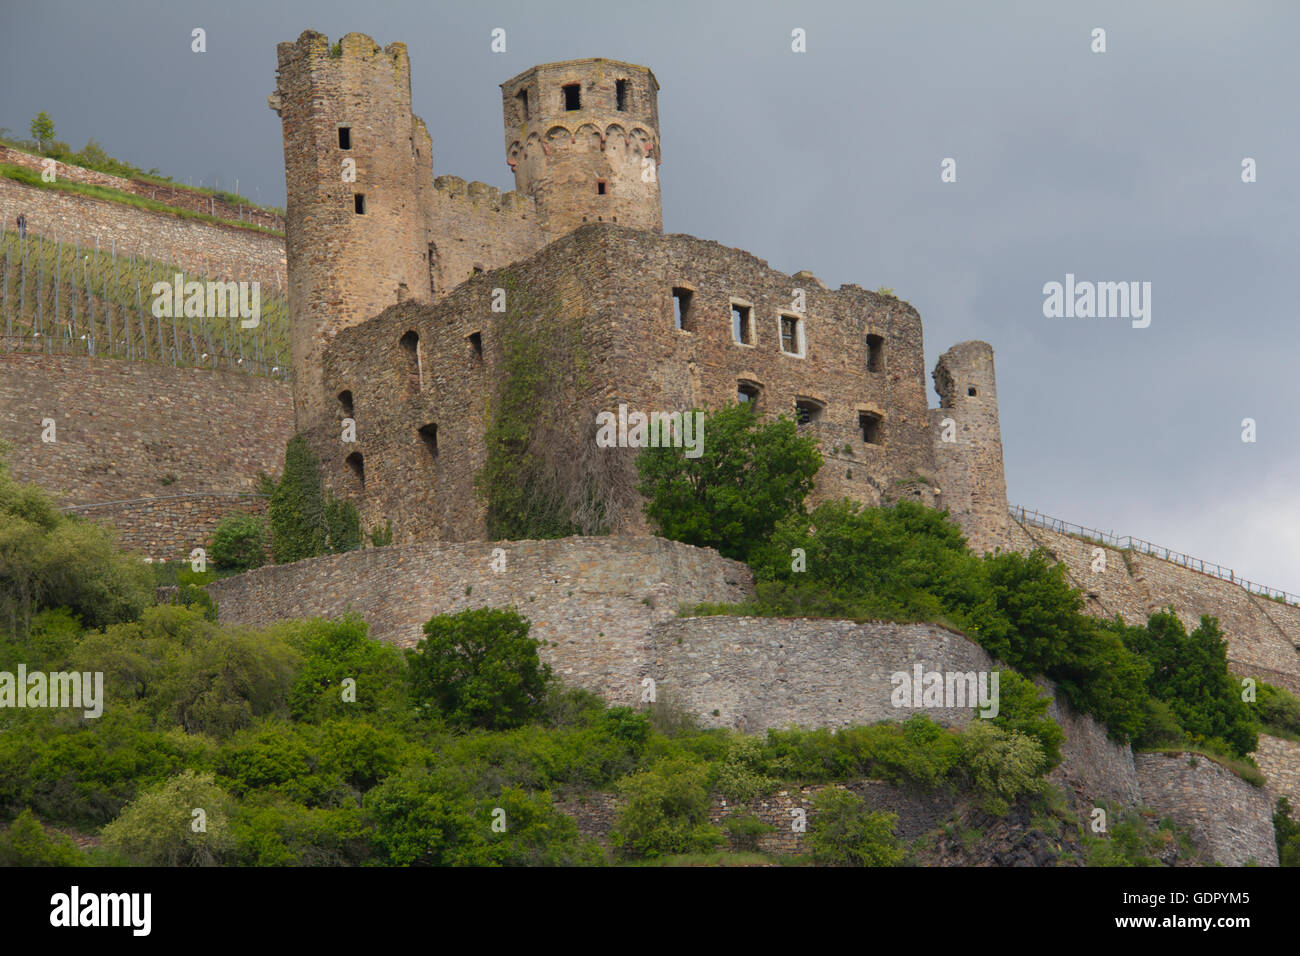 Ehrenfels Castle is a ruined castle above the Rhine Gorge near the town of Rudesheim, Germany - Stock Image